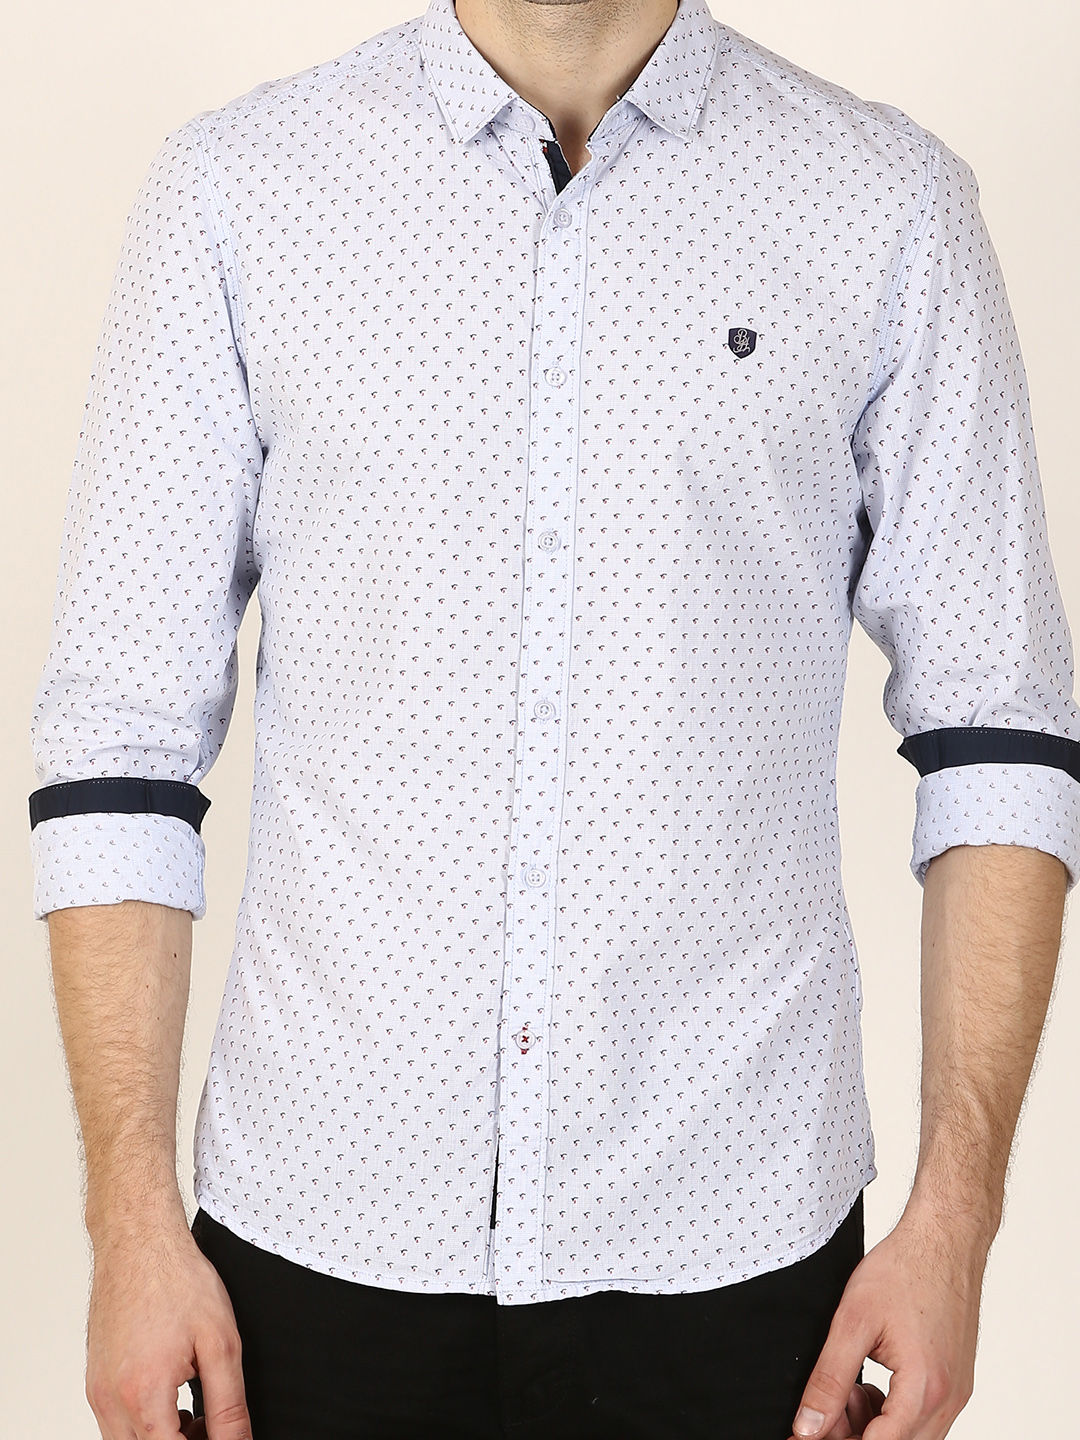 BLUE PATTERNED CASUAL SHIRT